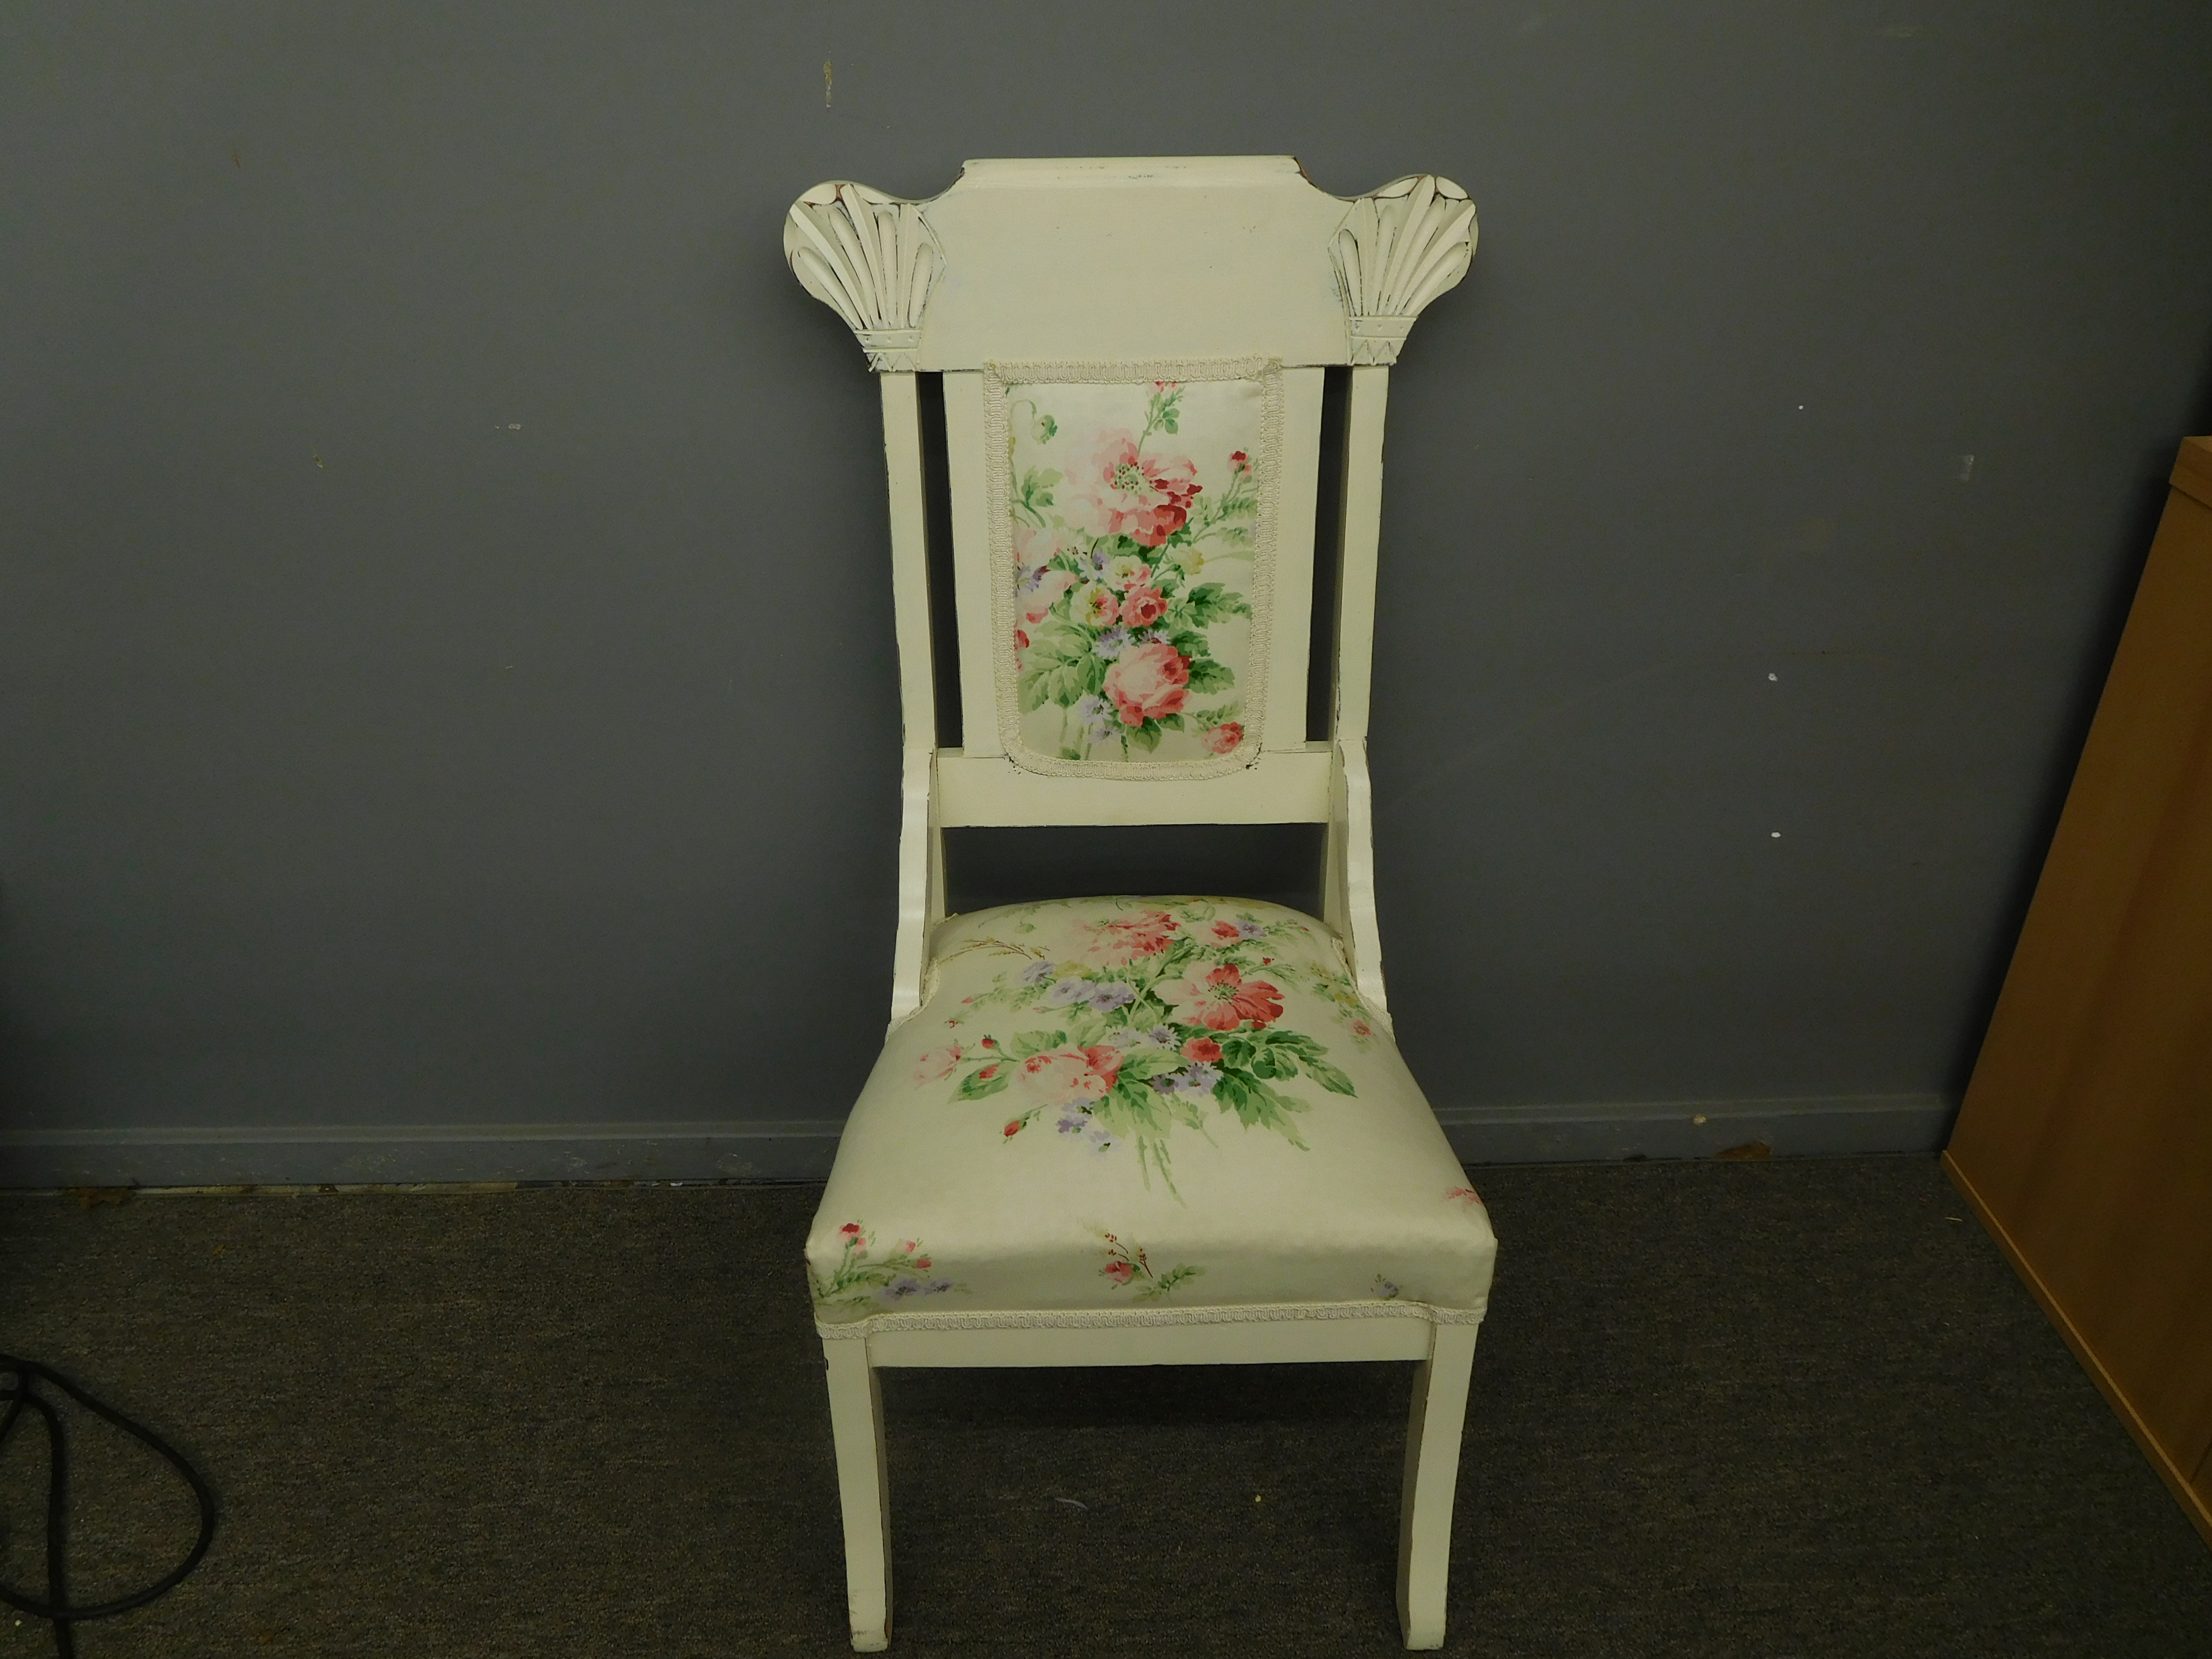 Vintage Off-White Accent Chair with Rose Design Upholstery